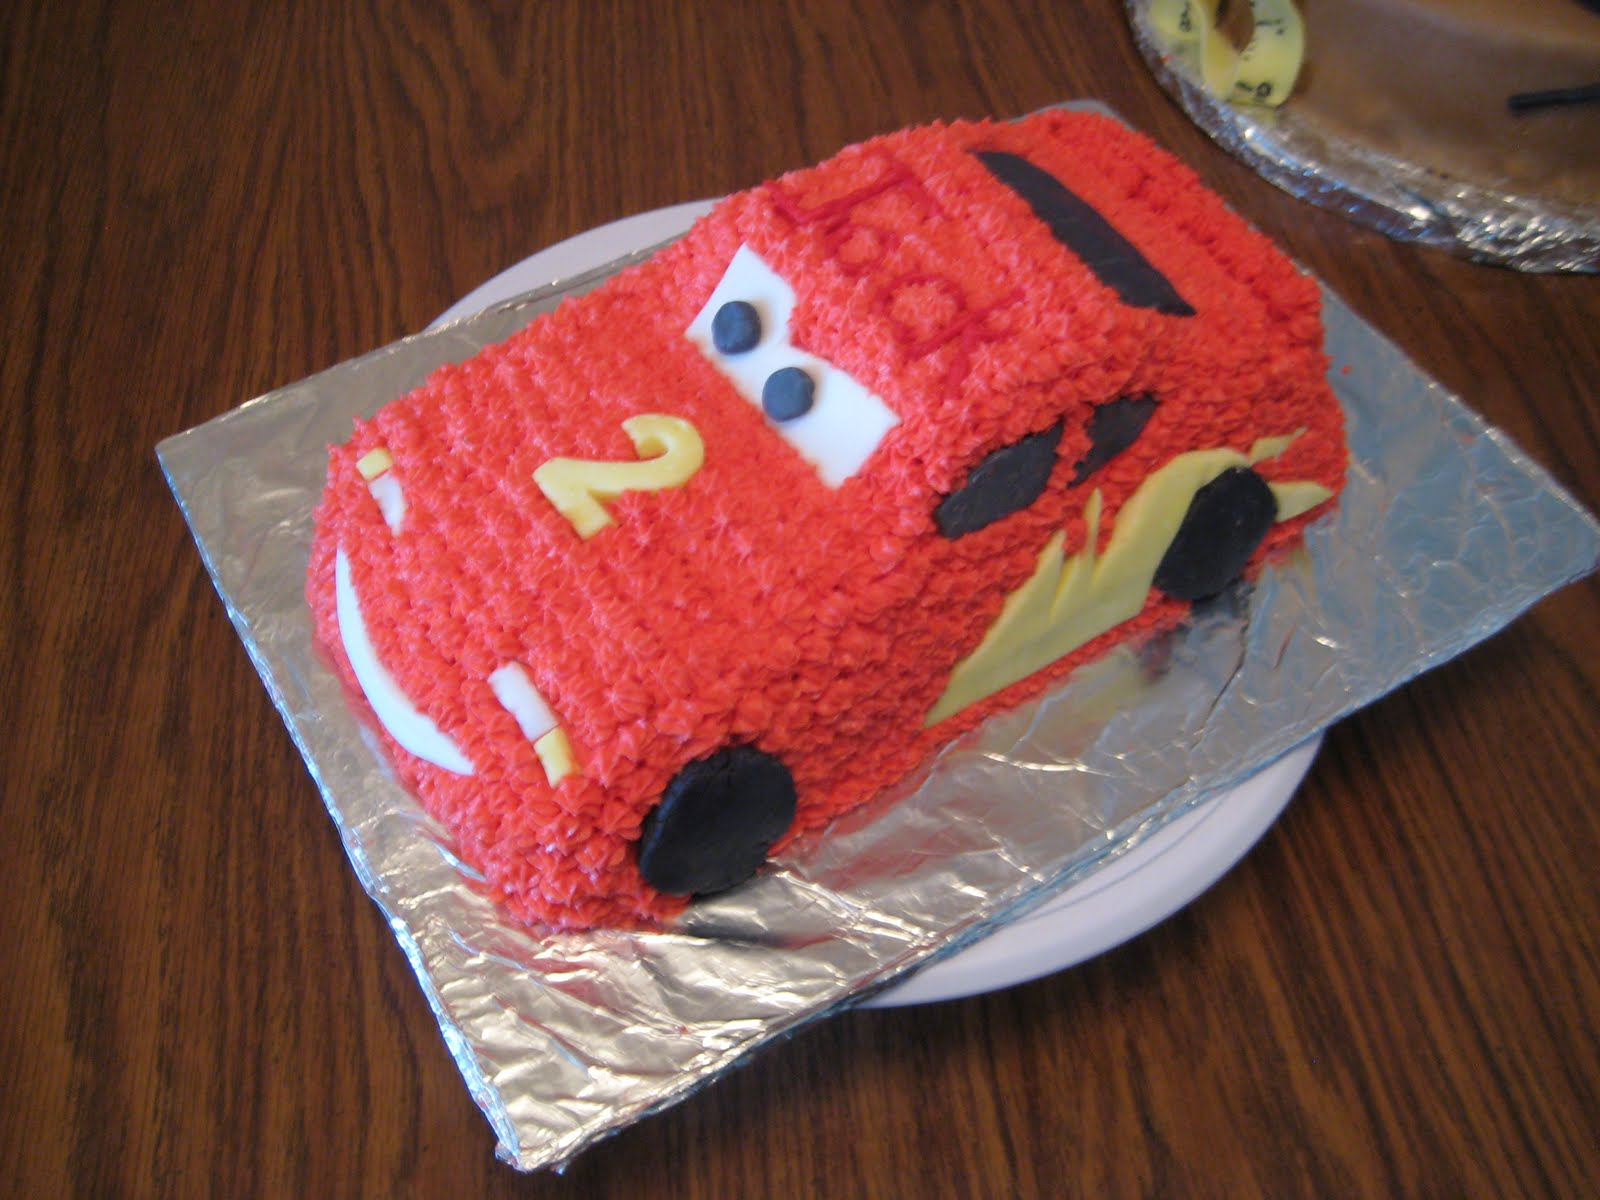 ABCD Cakes the good the bad and the ugly Lightning McQueen